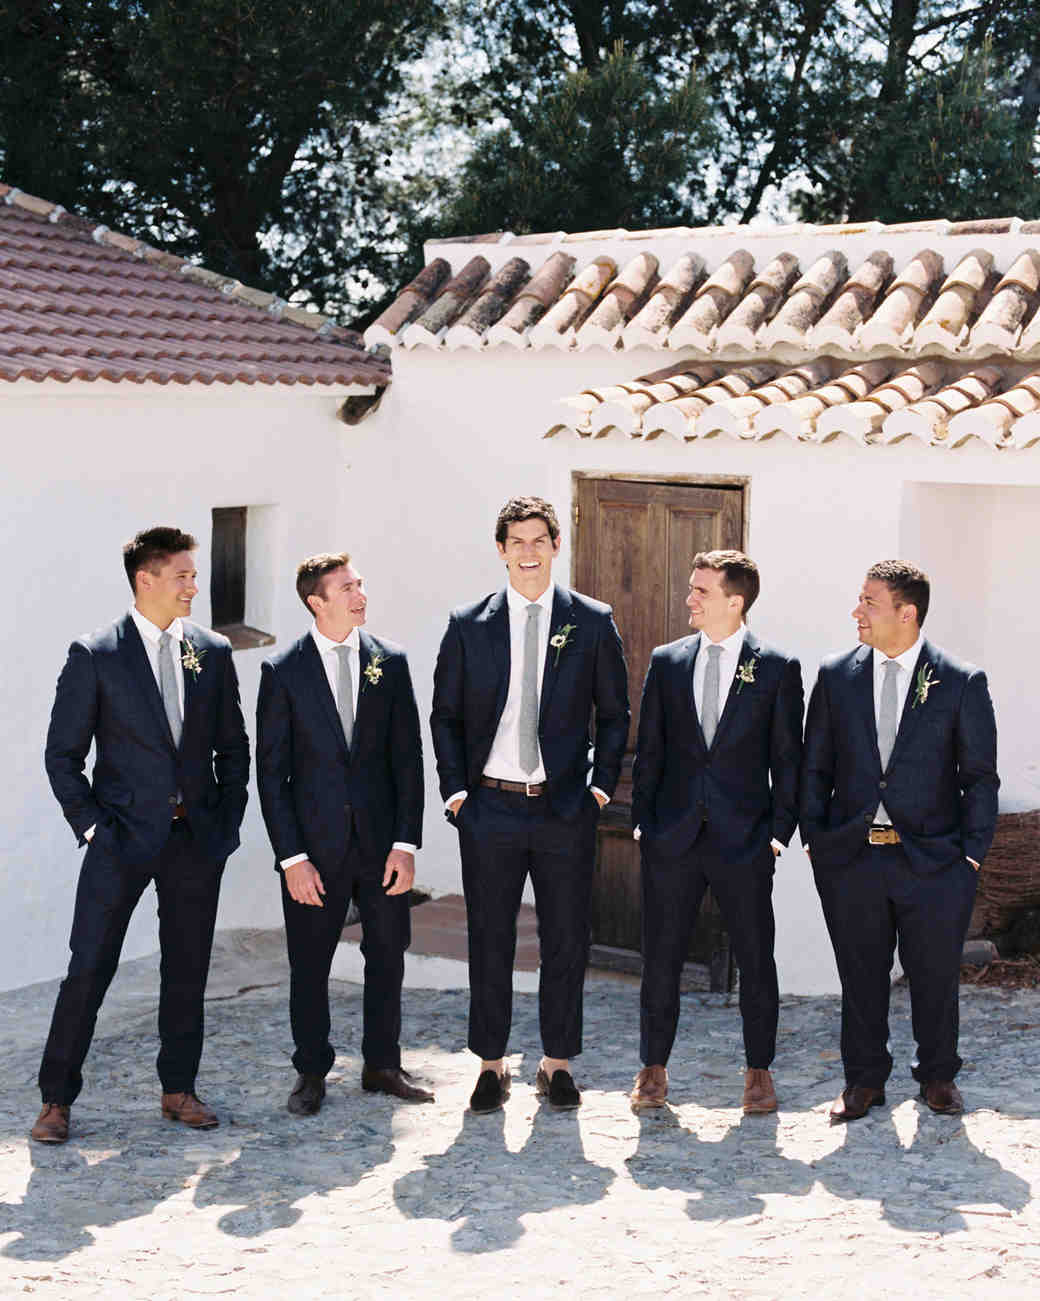 daphne jack wedding spain groomsmen